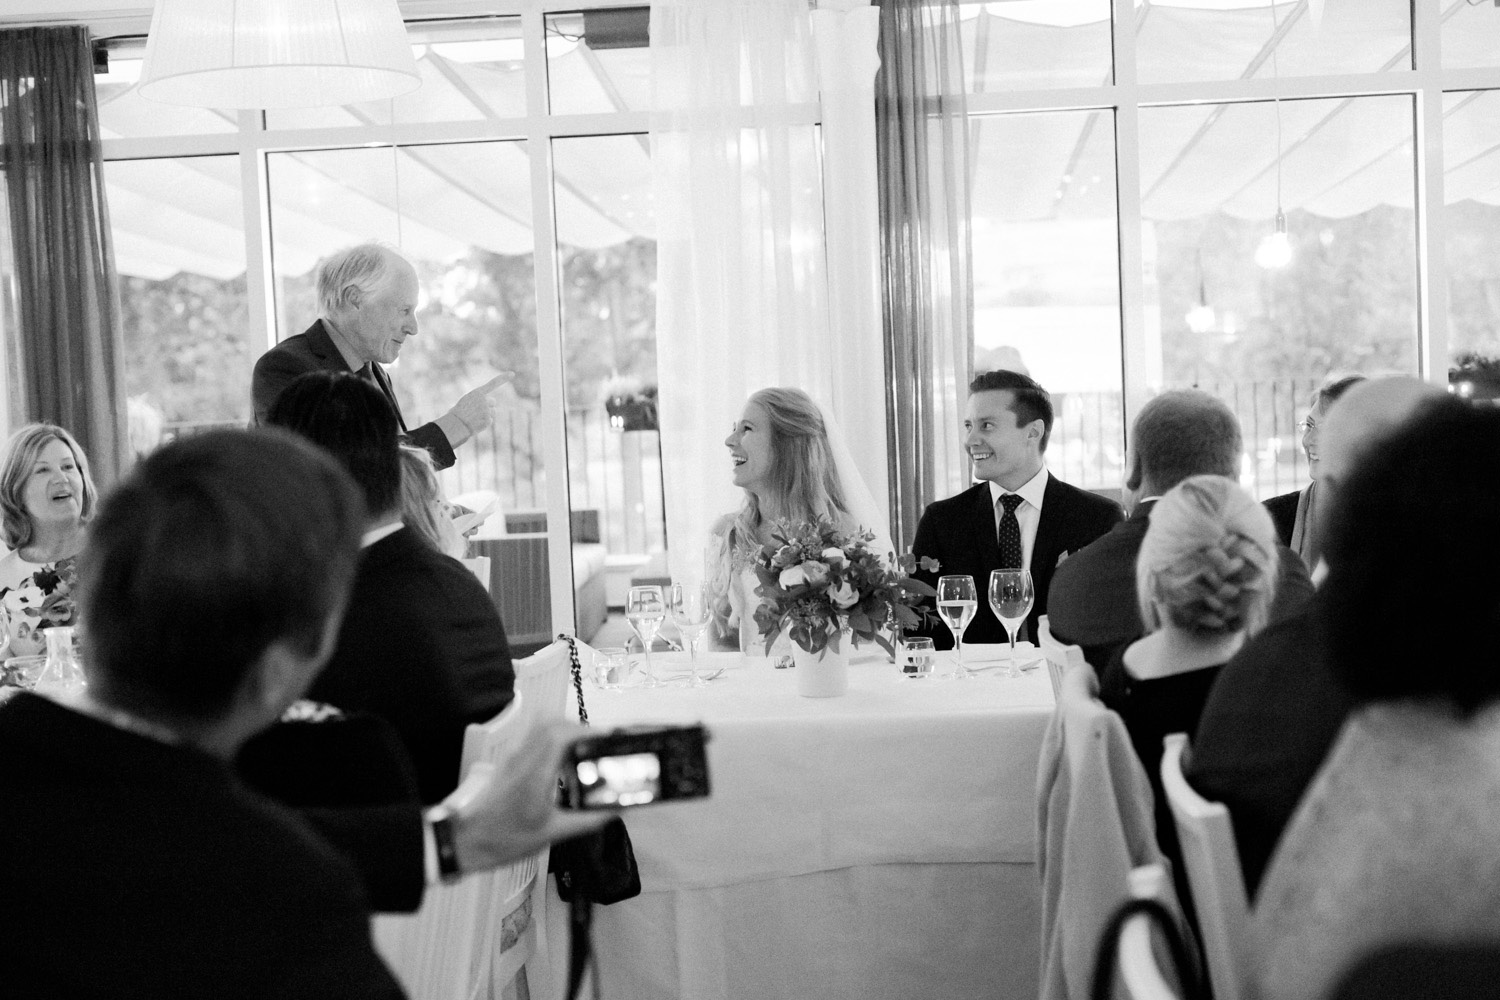 074-sweden-vidbynäs-wedding-photographer-bröllopsfotograf.jpg